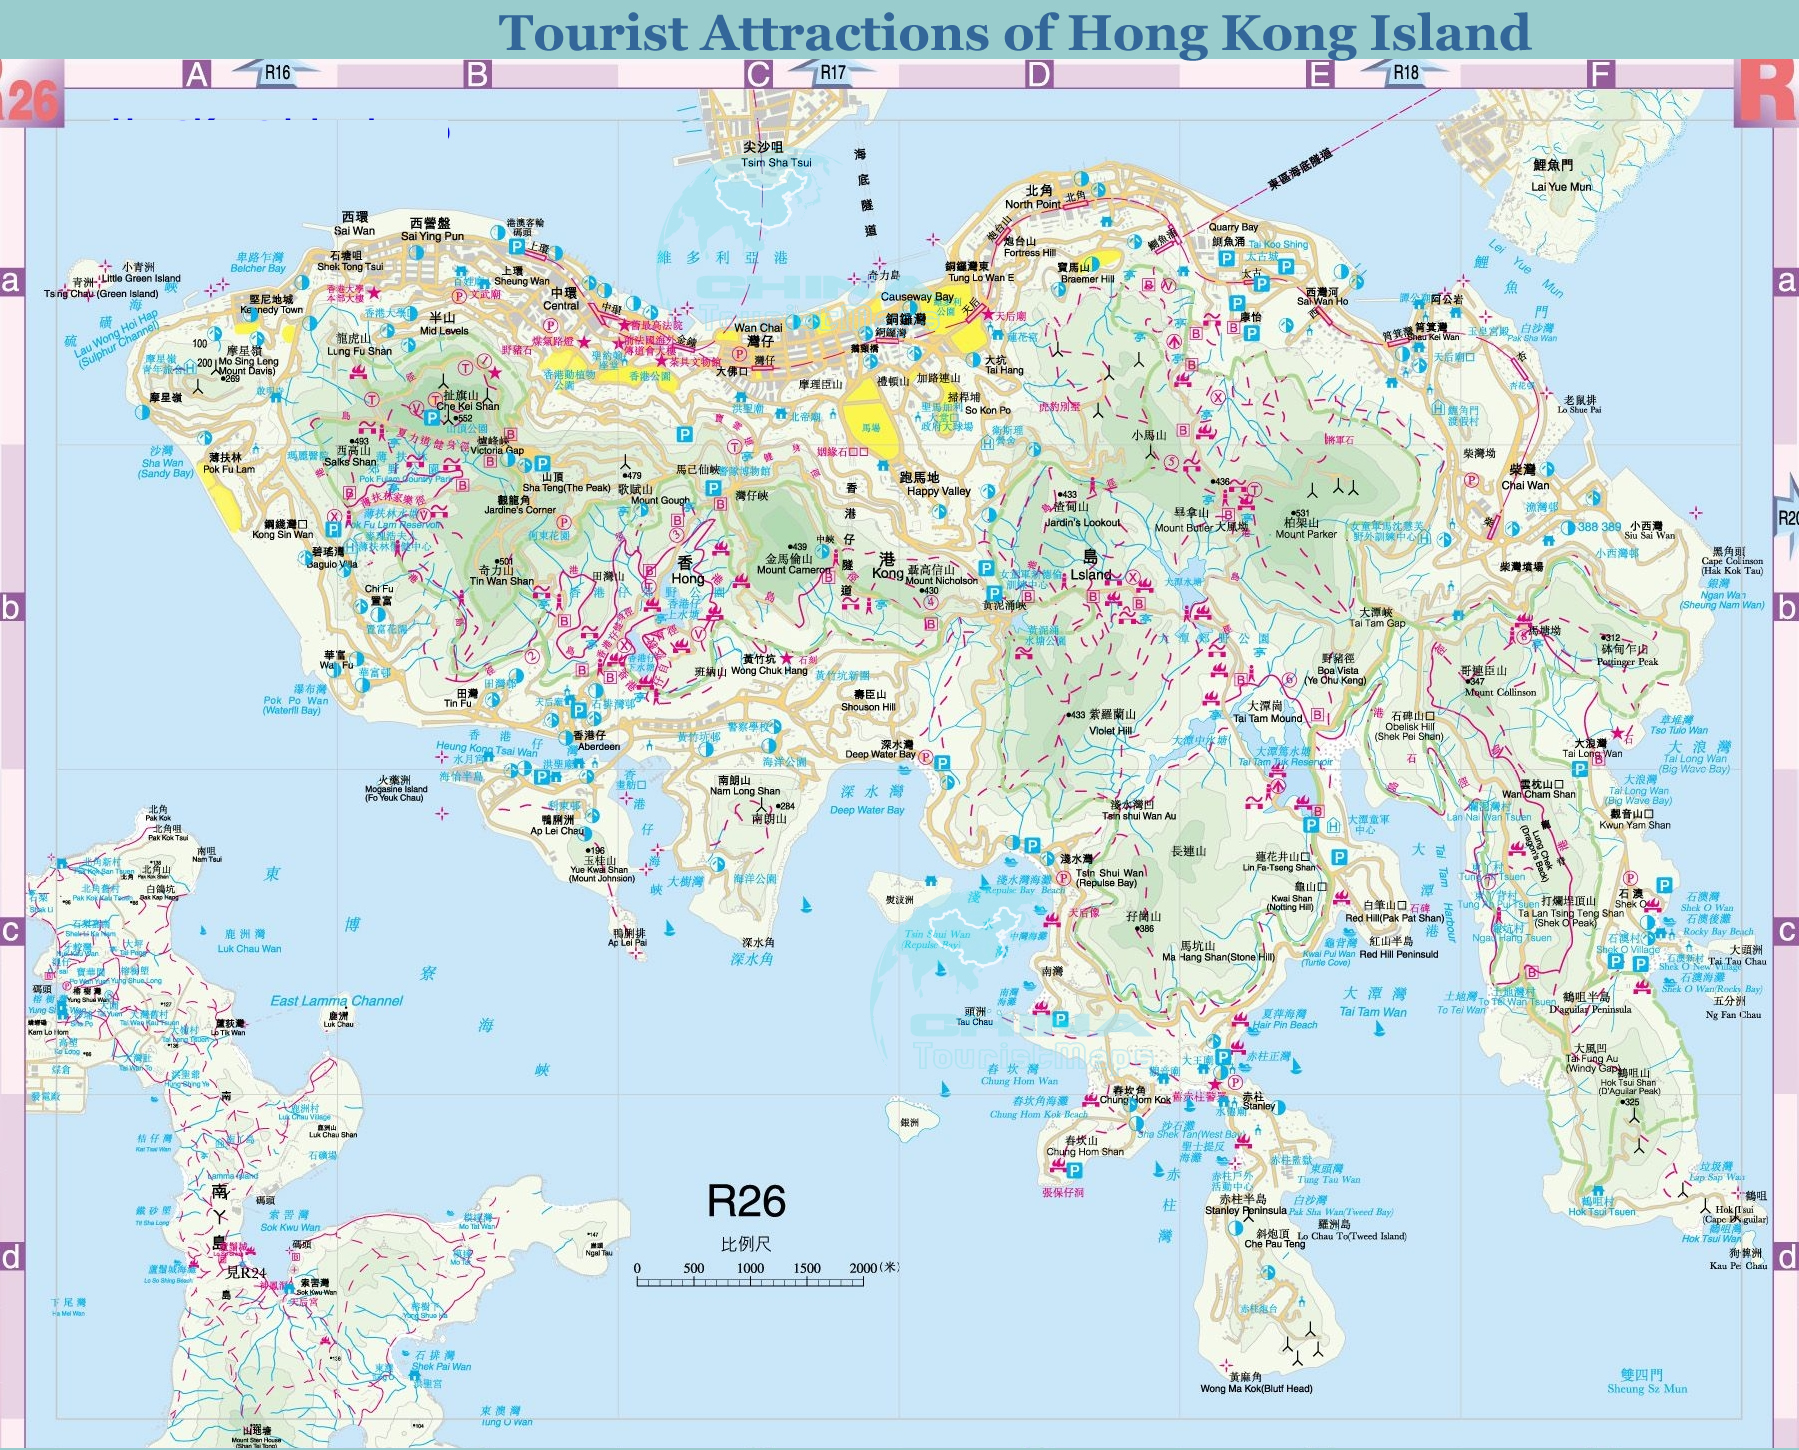 Tourist Map of Hong Kong Island ? Layout, Travel Guide MAP OF HONG KONG